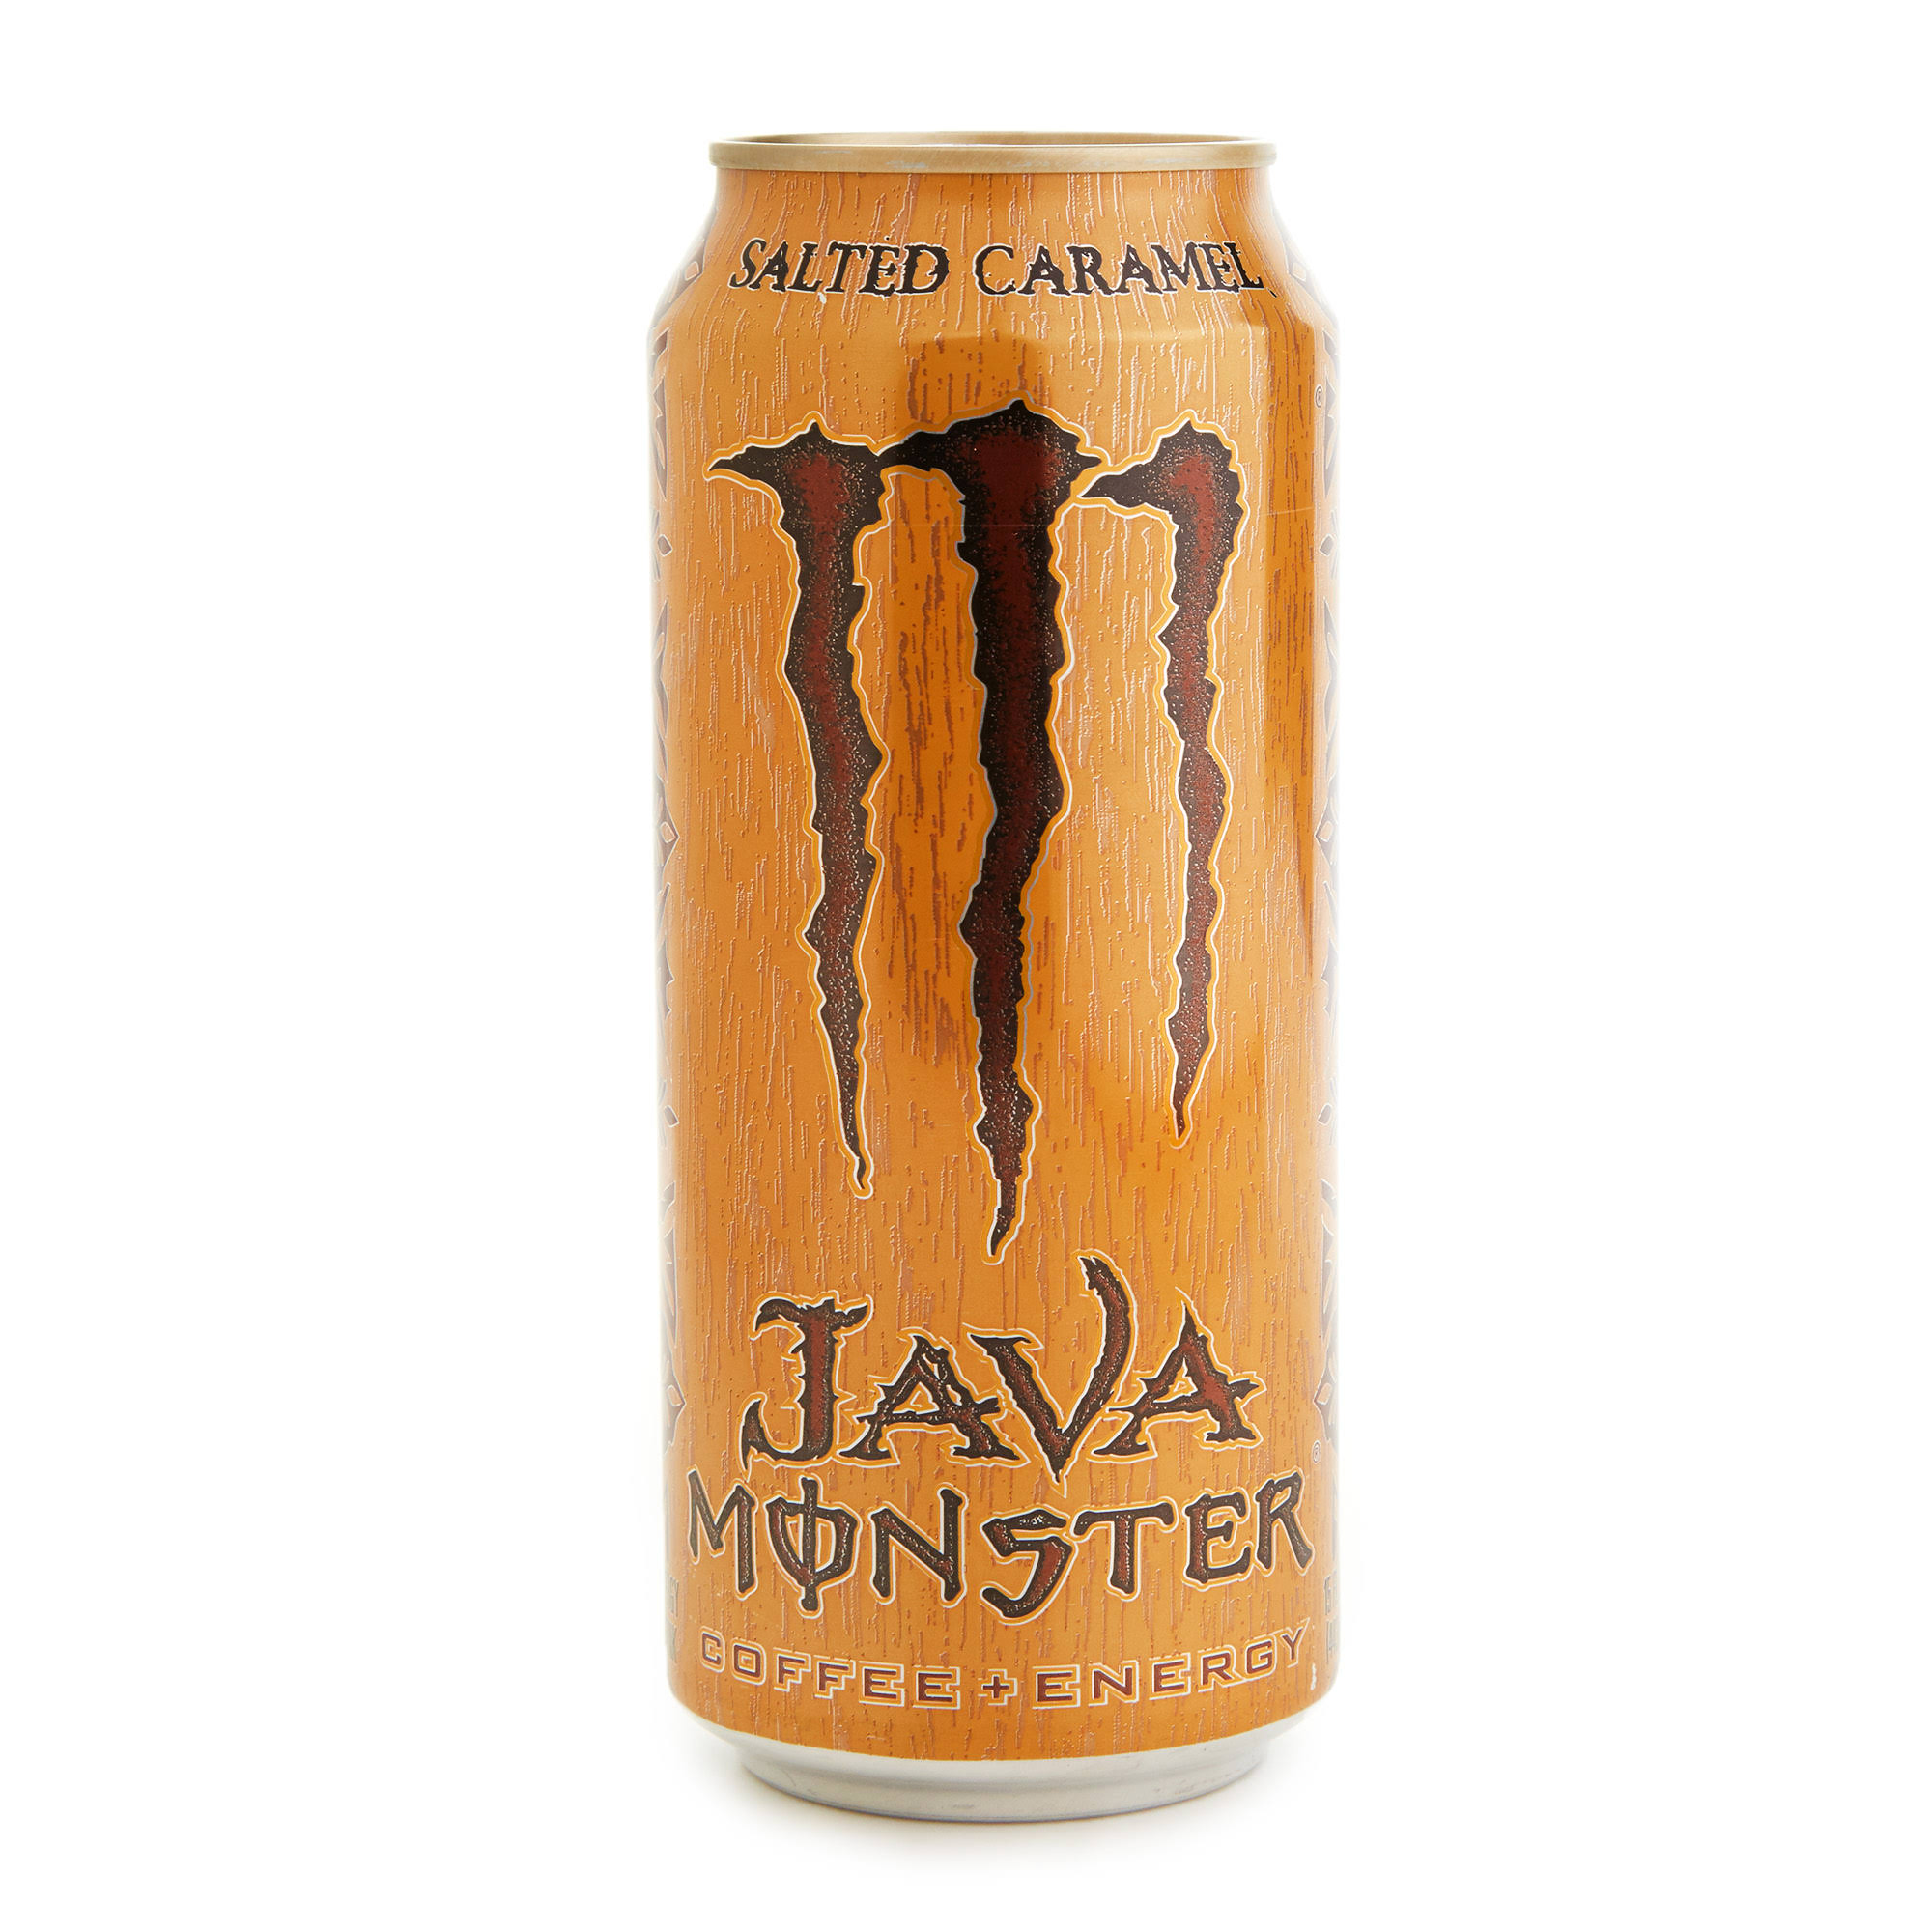 Monster Java Coffee Energy Drink - Salted Caramel, 15oz